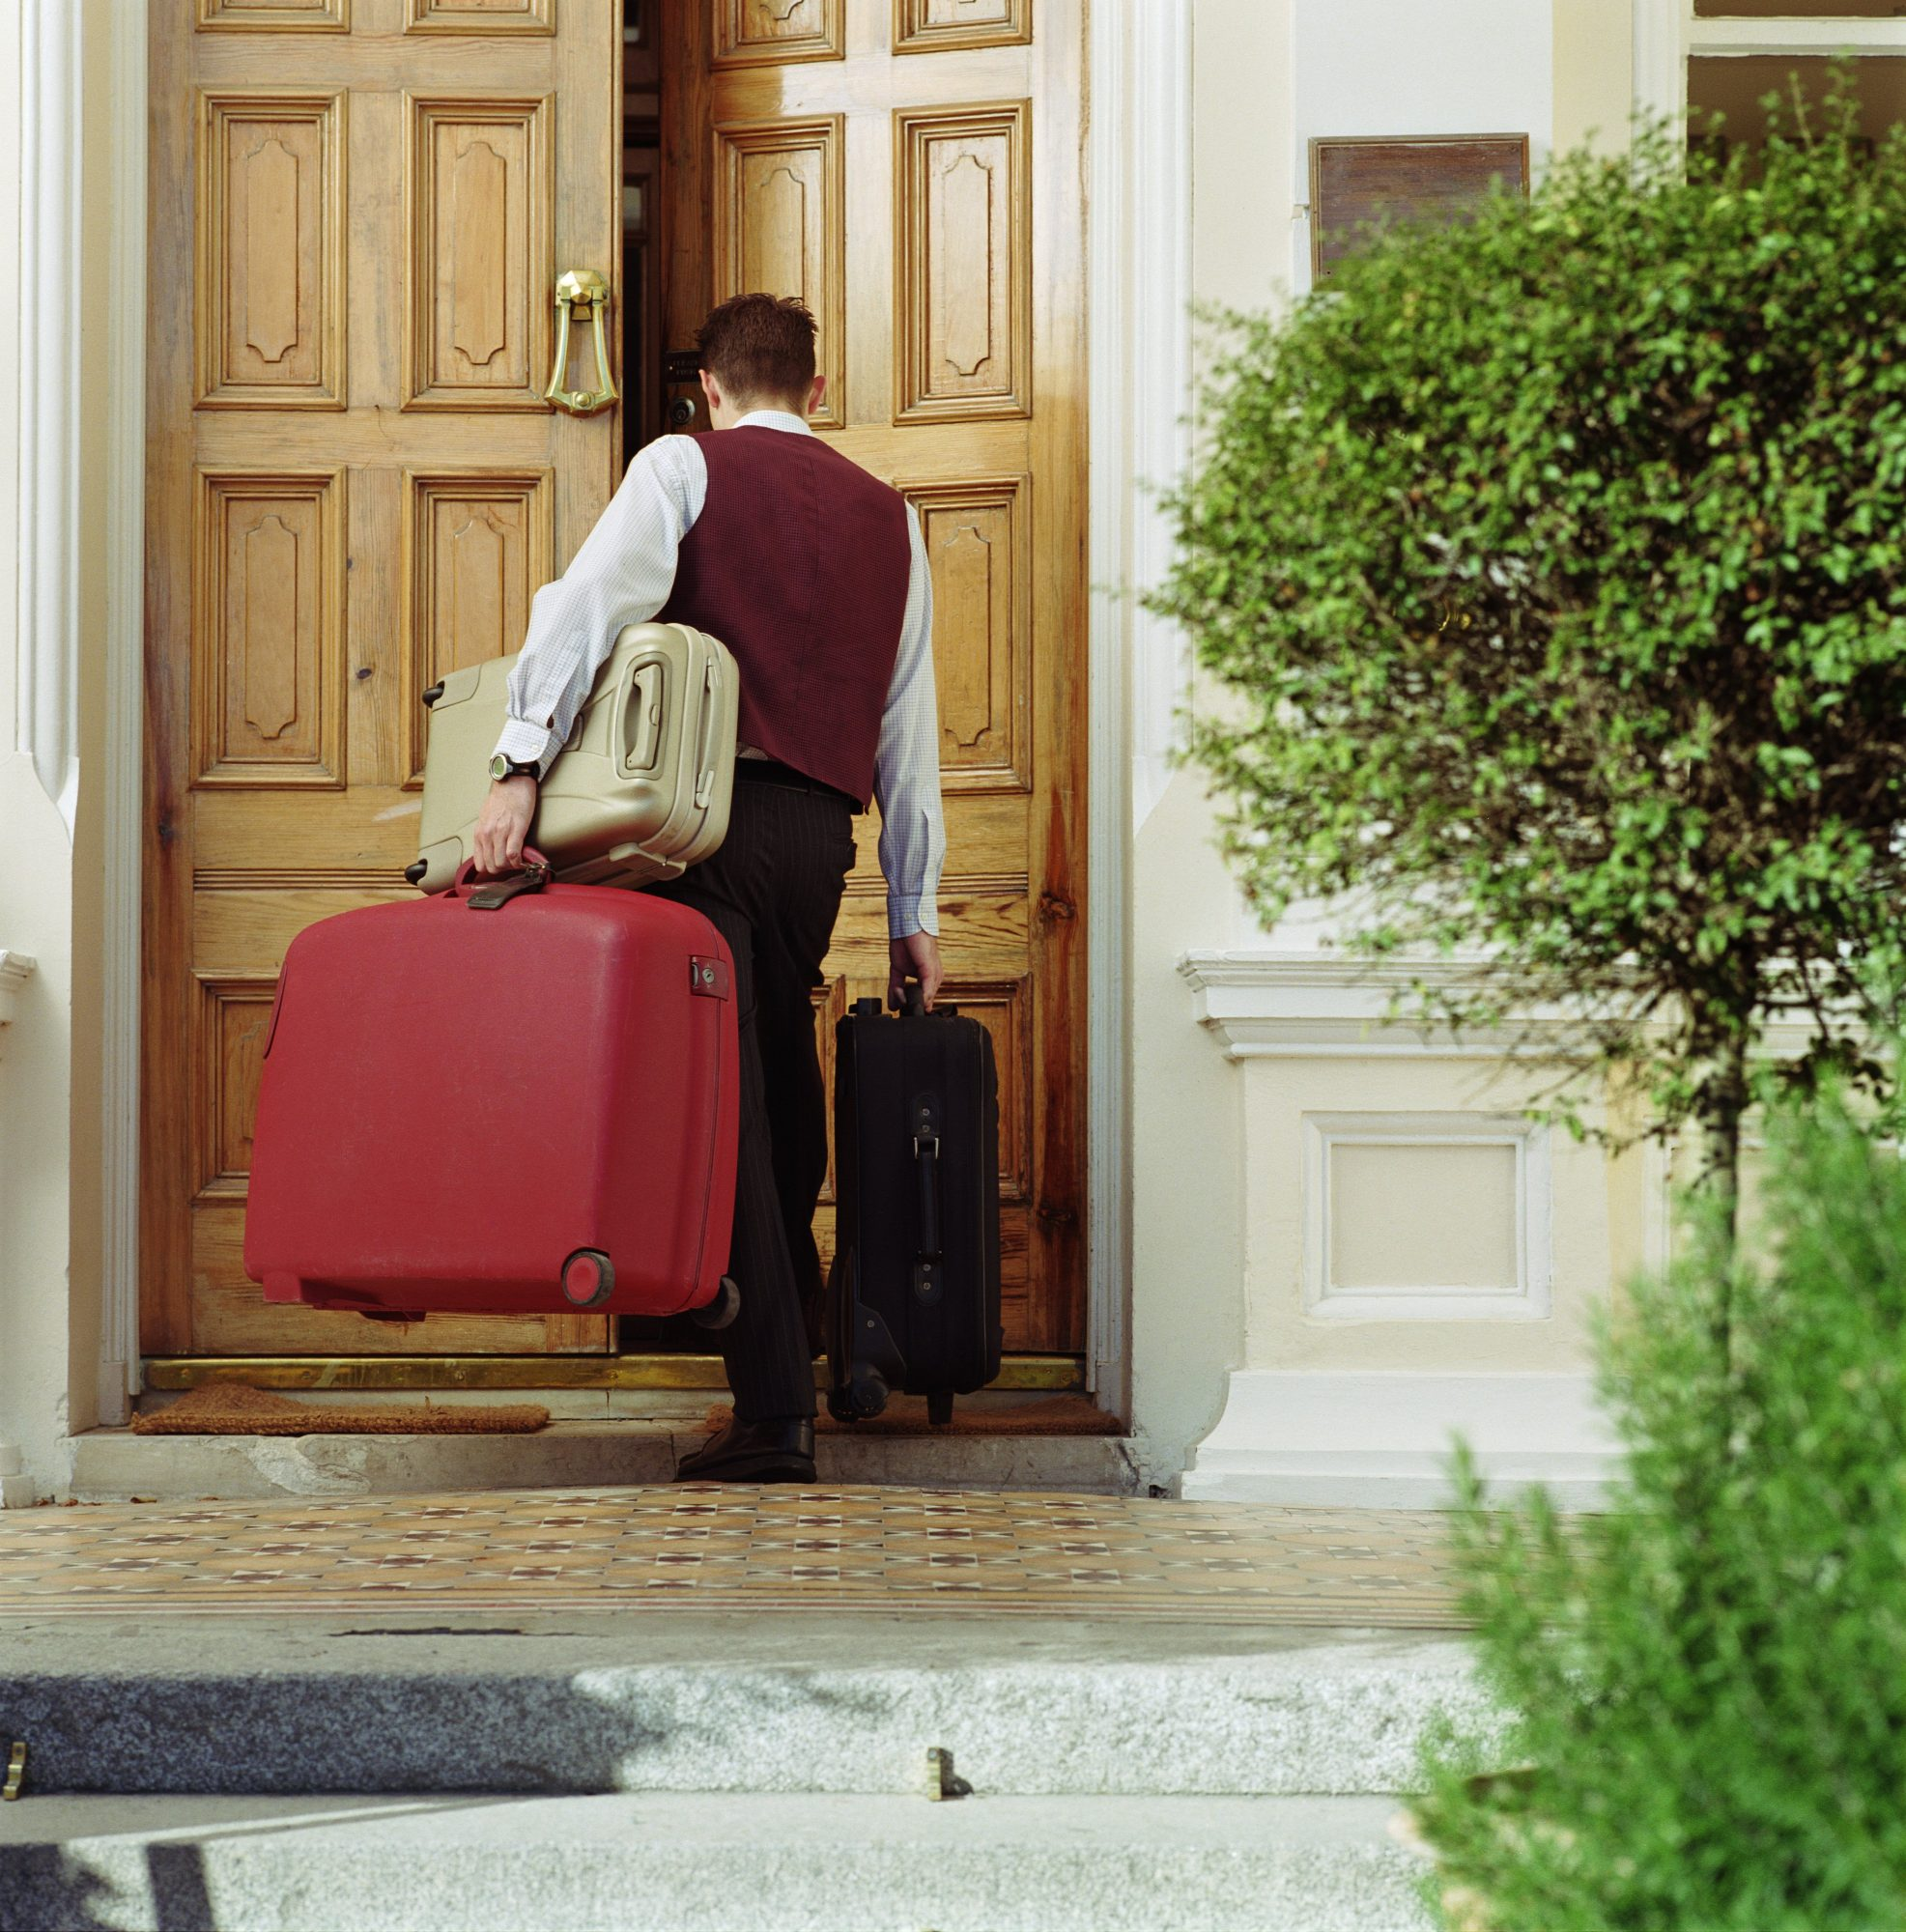 Doorman carrying luggage into hotel, rear view